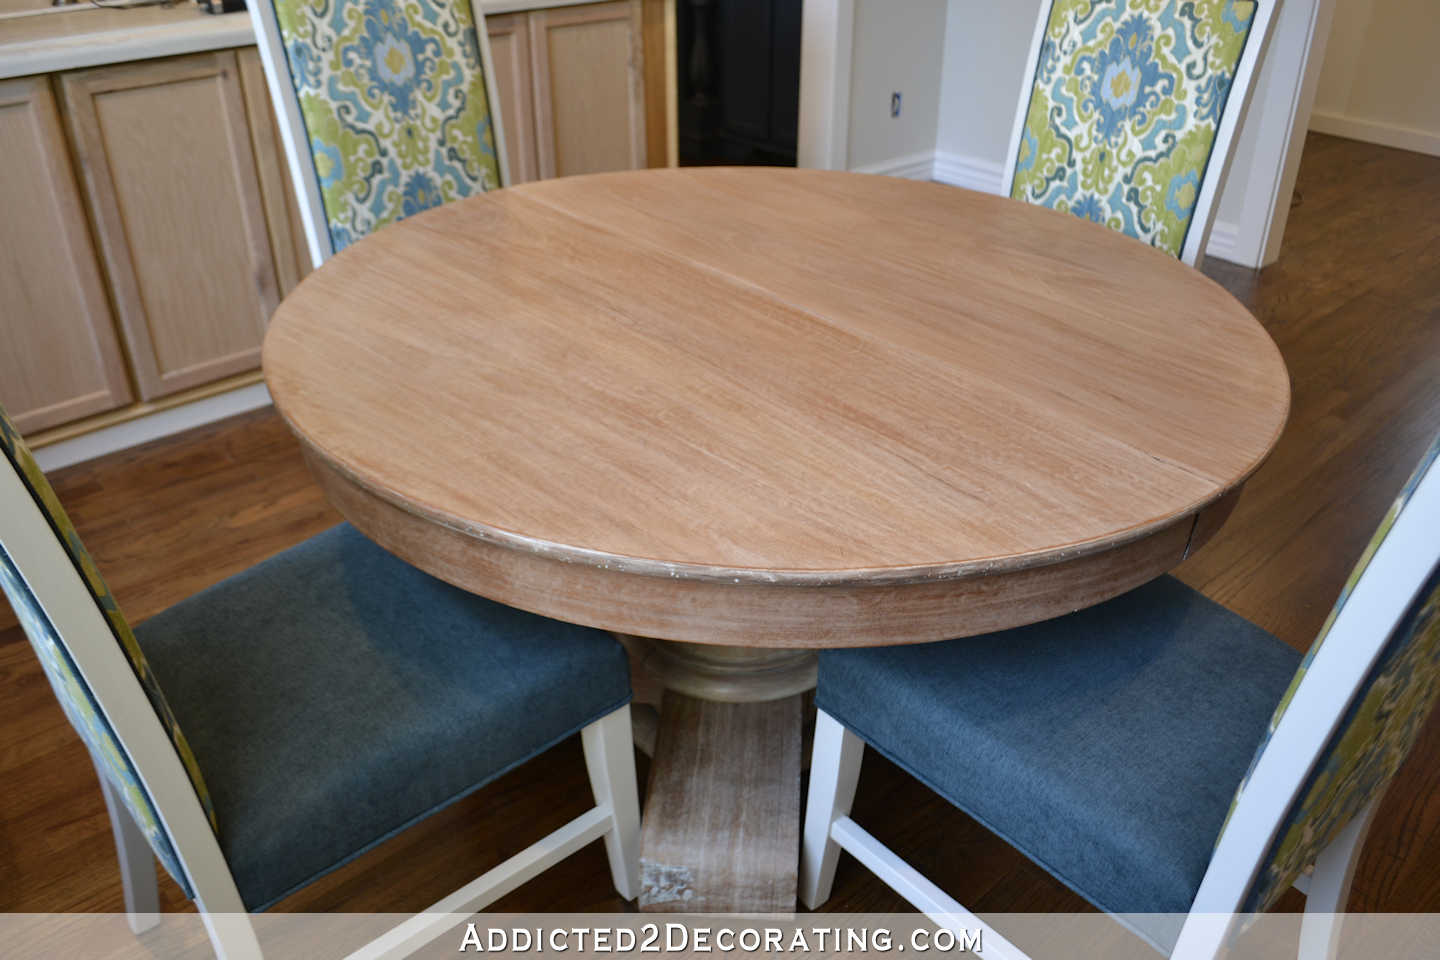 breakfast room dining table makeover - refinished table with new dining chairs - 2